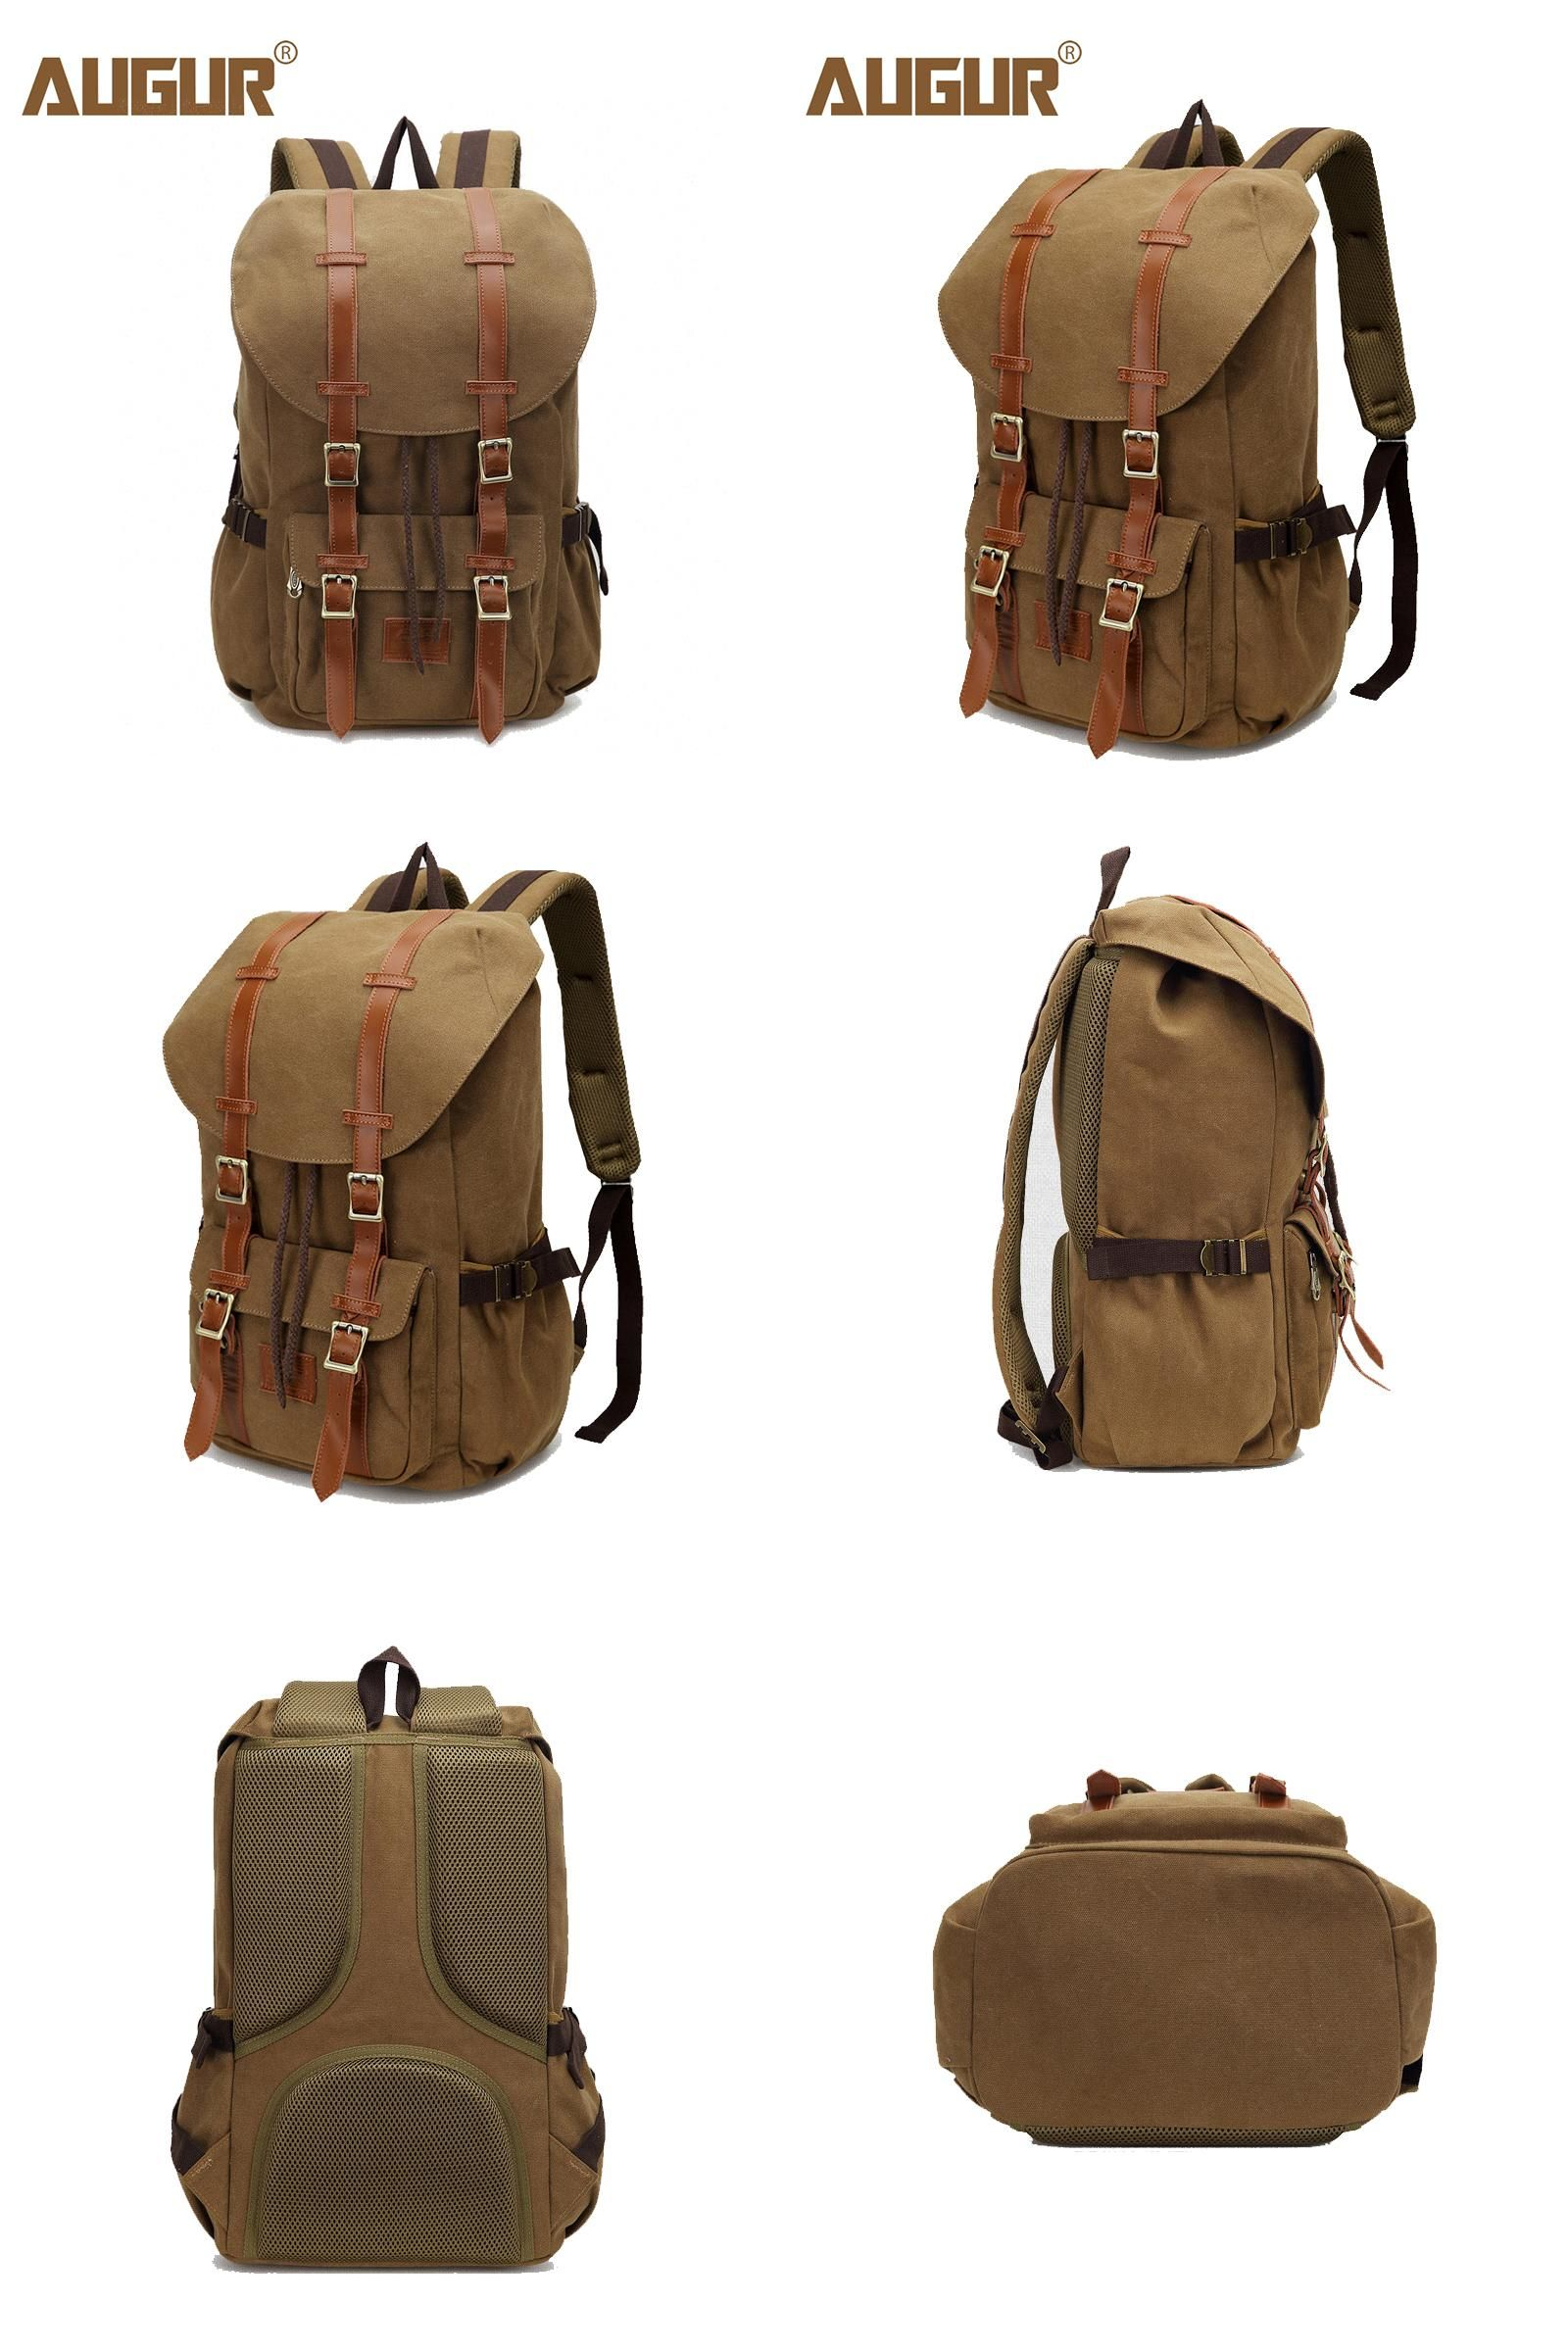 e039146f28  Visit to Buy  2017 NEW AUGUR Canvas Backpack Travel Bags For Men Women